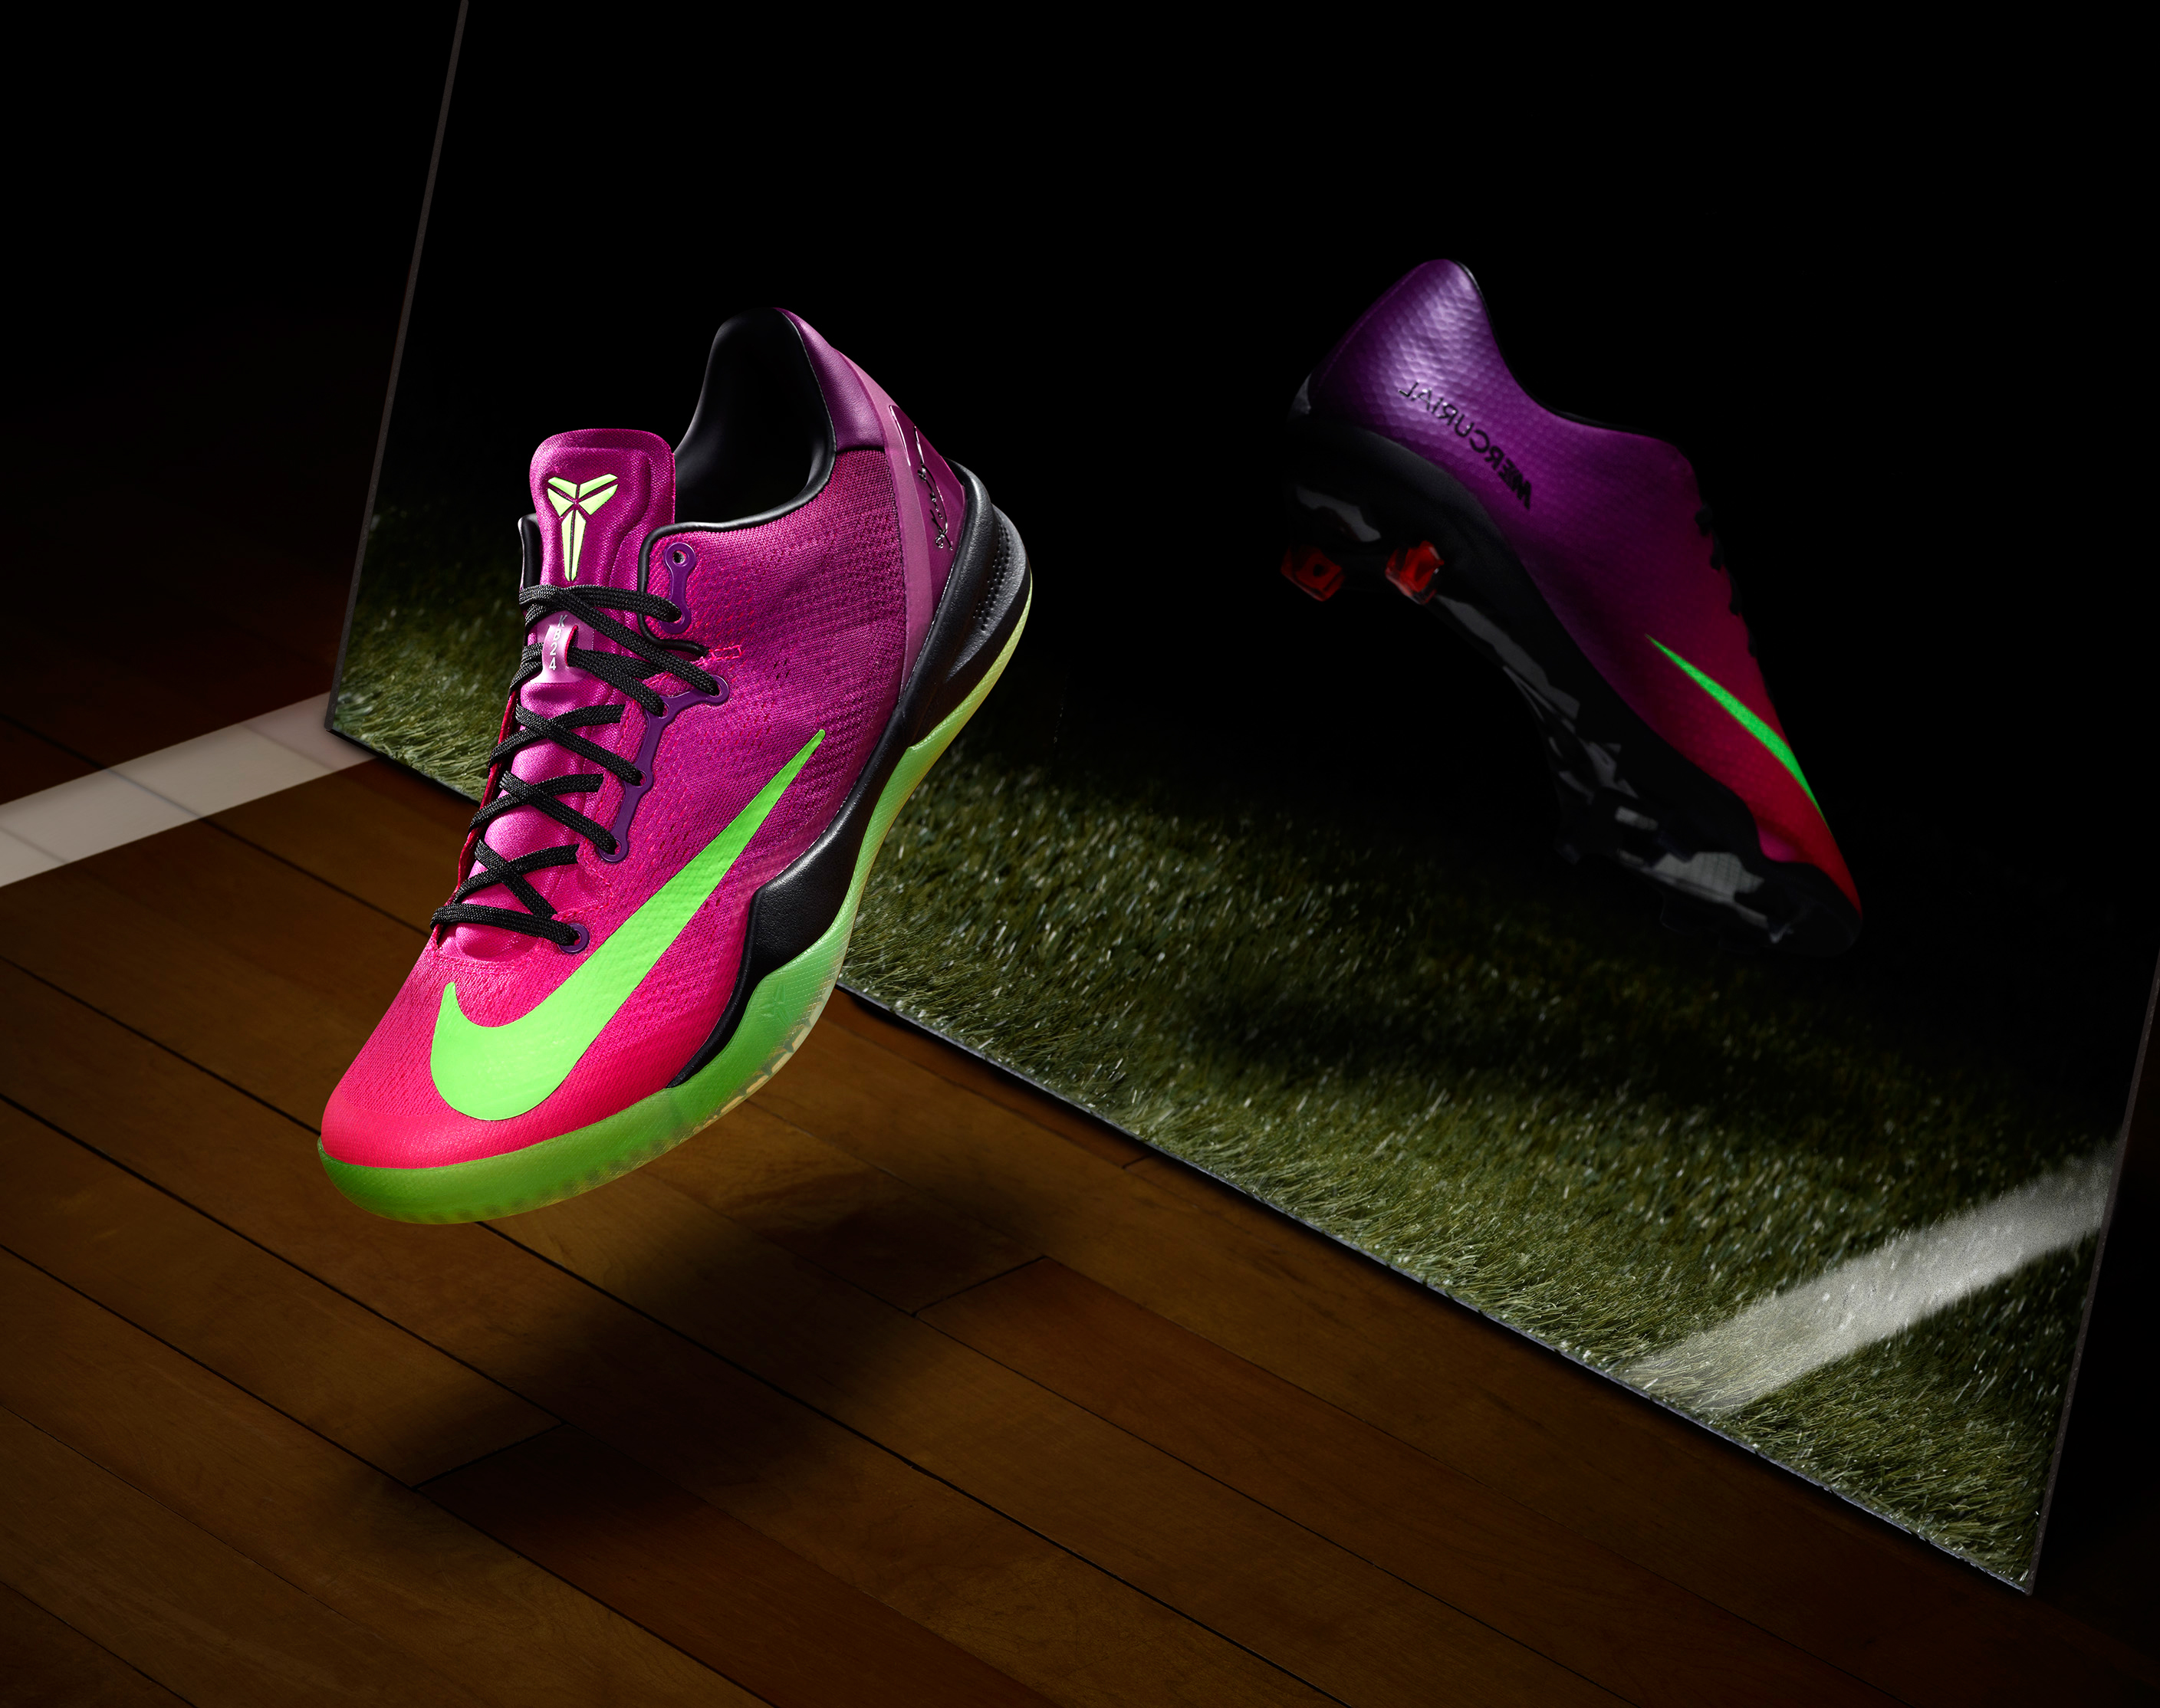 mercurial nike price philippines